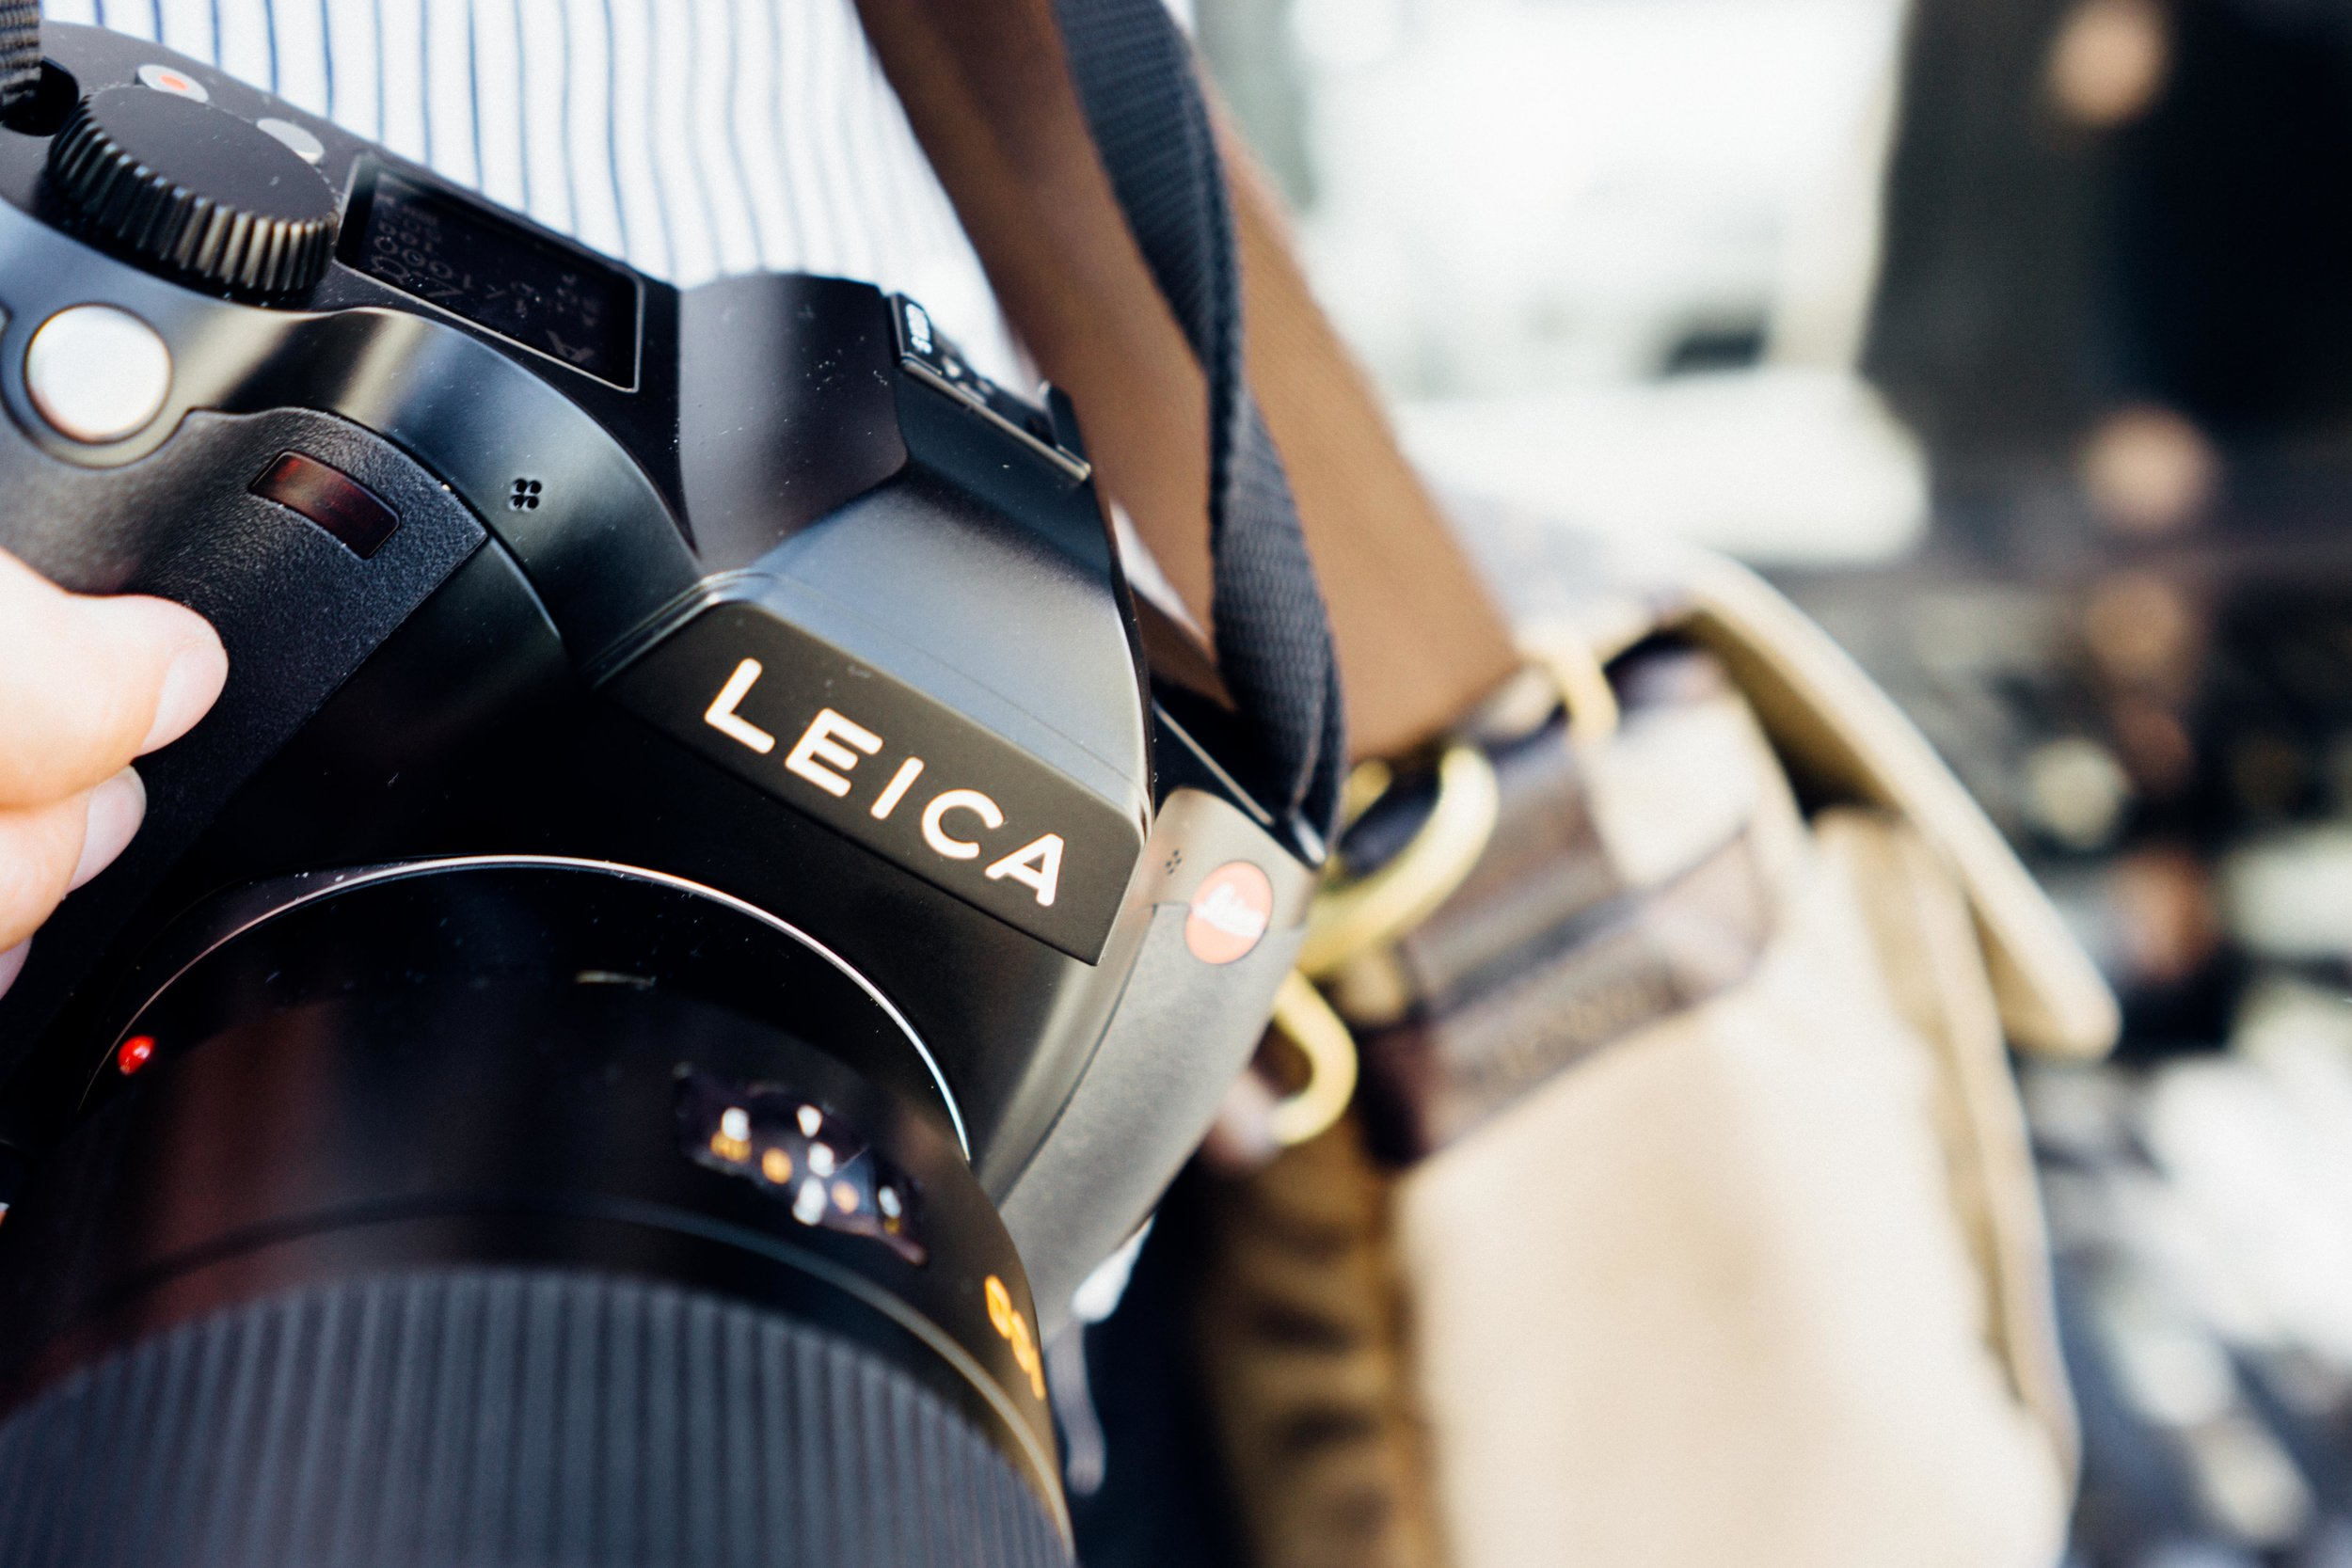 Leica S Medium format - When a classic becomes more than just a digital camera you get the Leica S. A medium format power house of a camera with the iconic logo!